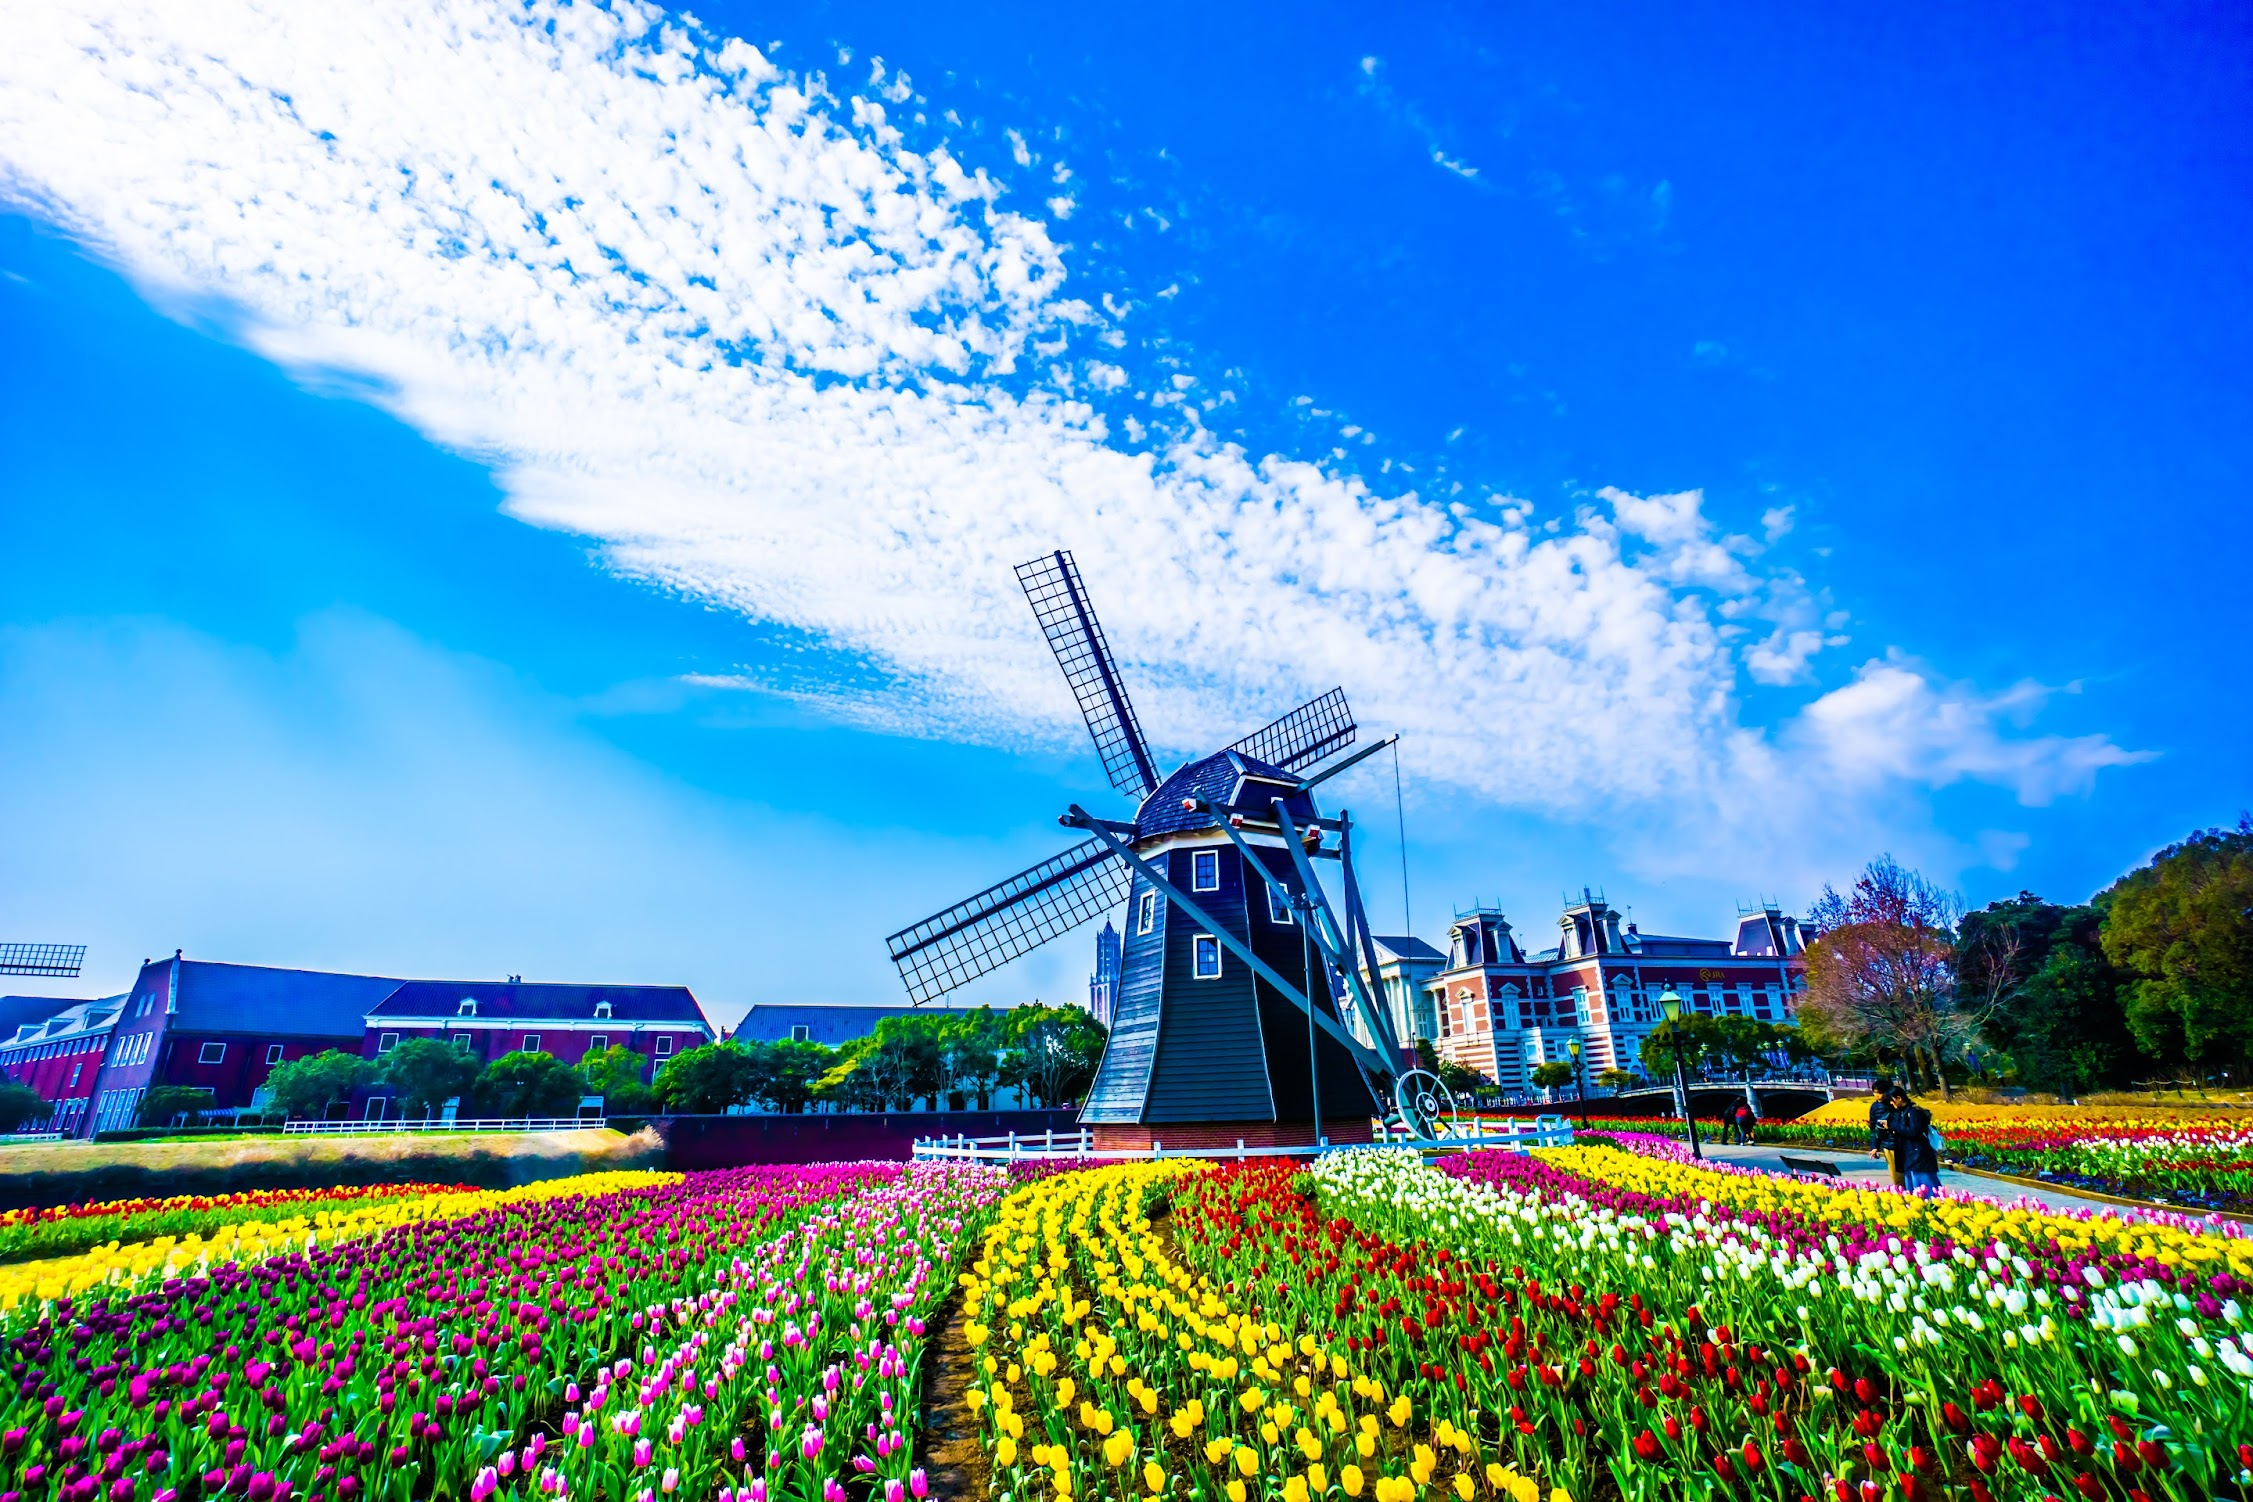 Huis Ten Bosch Flower Road2